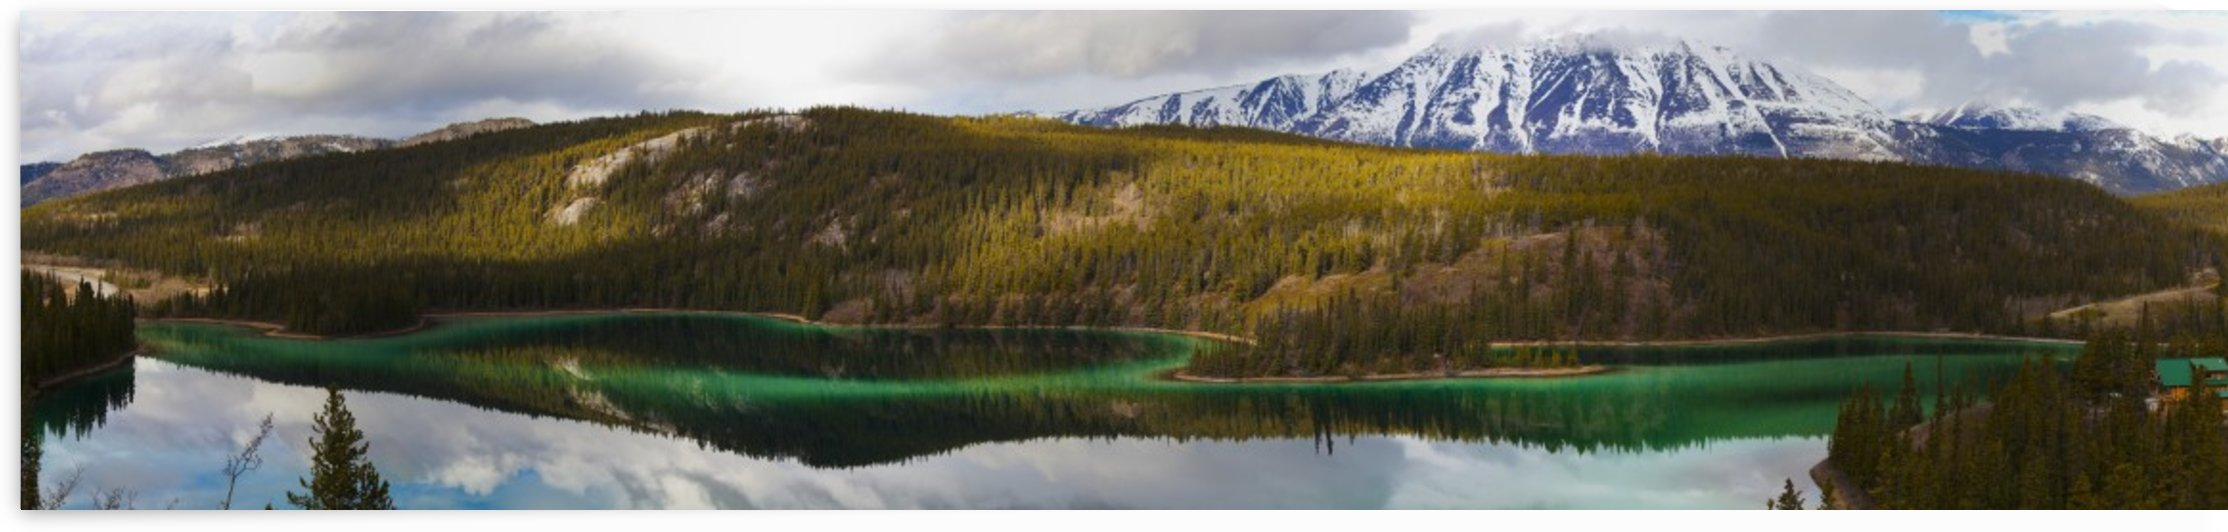 Emerald lake panorama;Carcross yukon canada by PacificStock